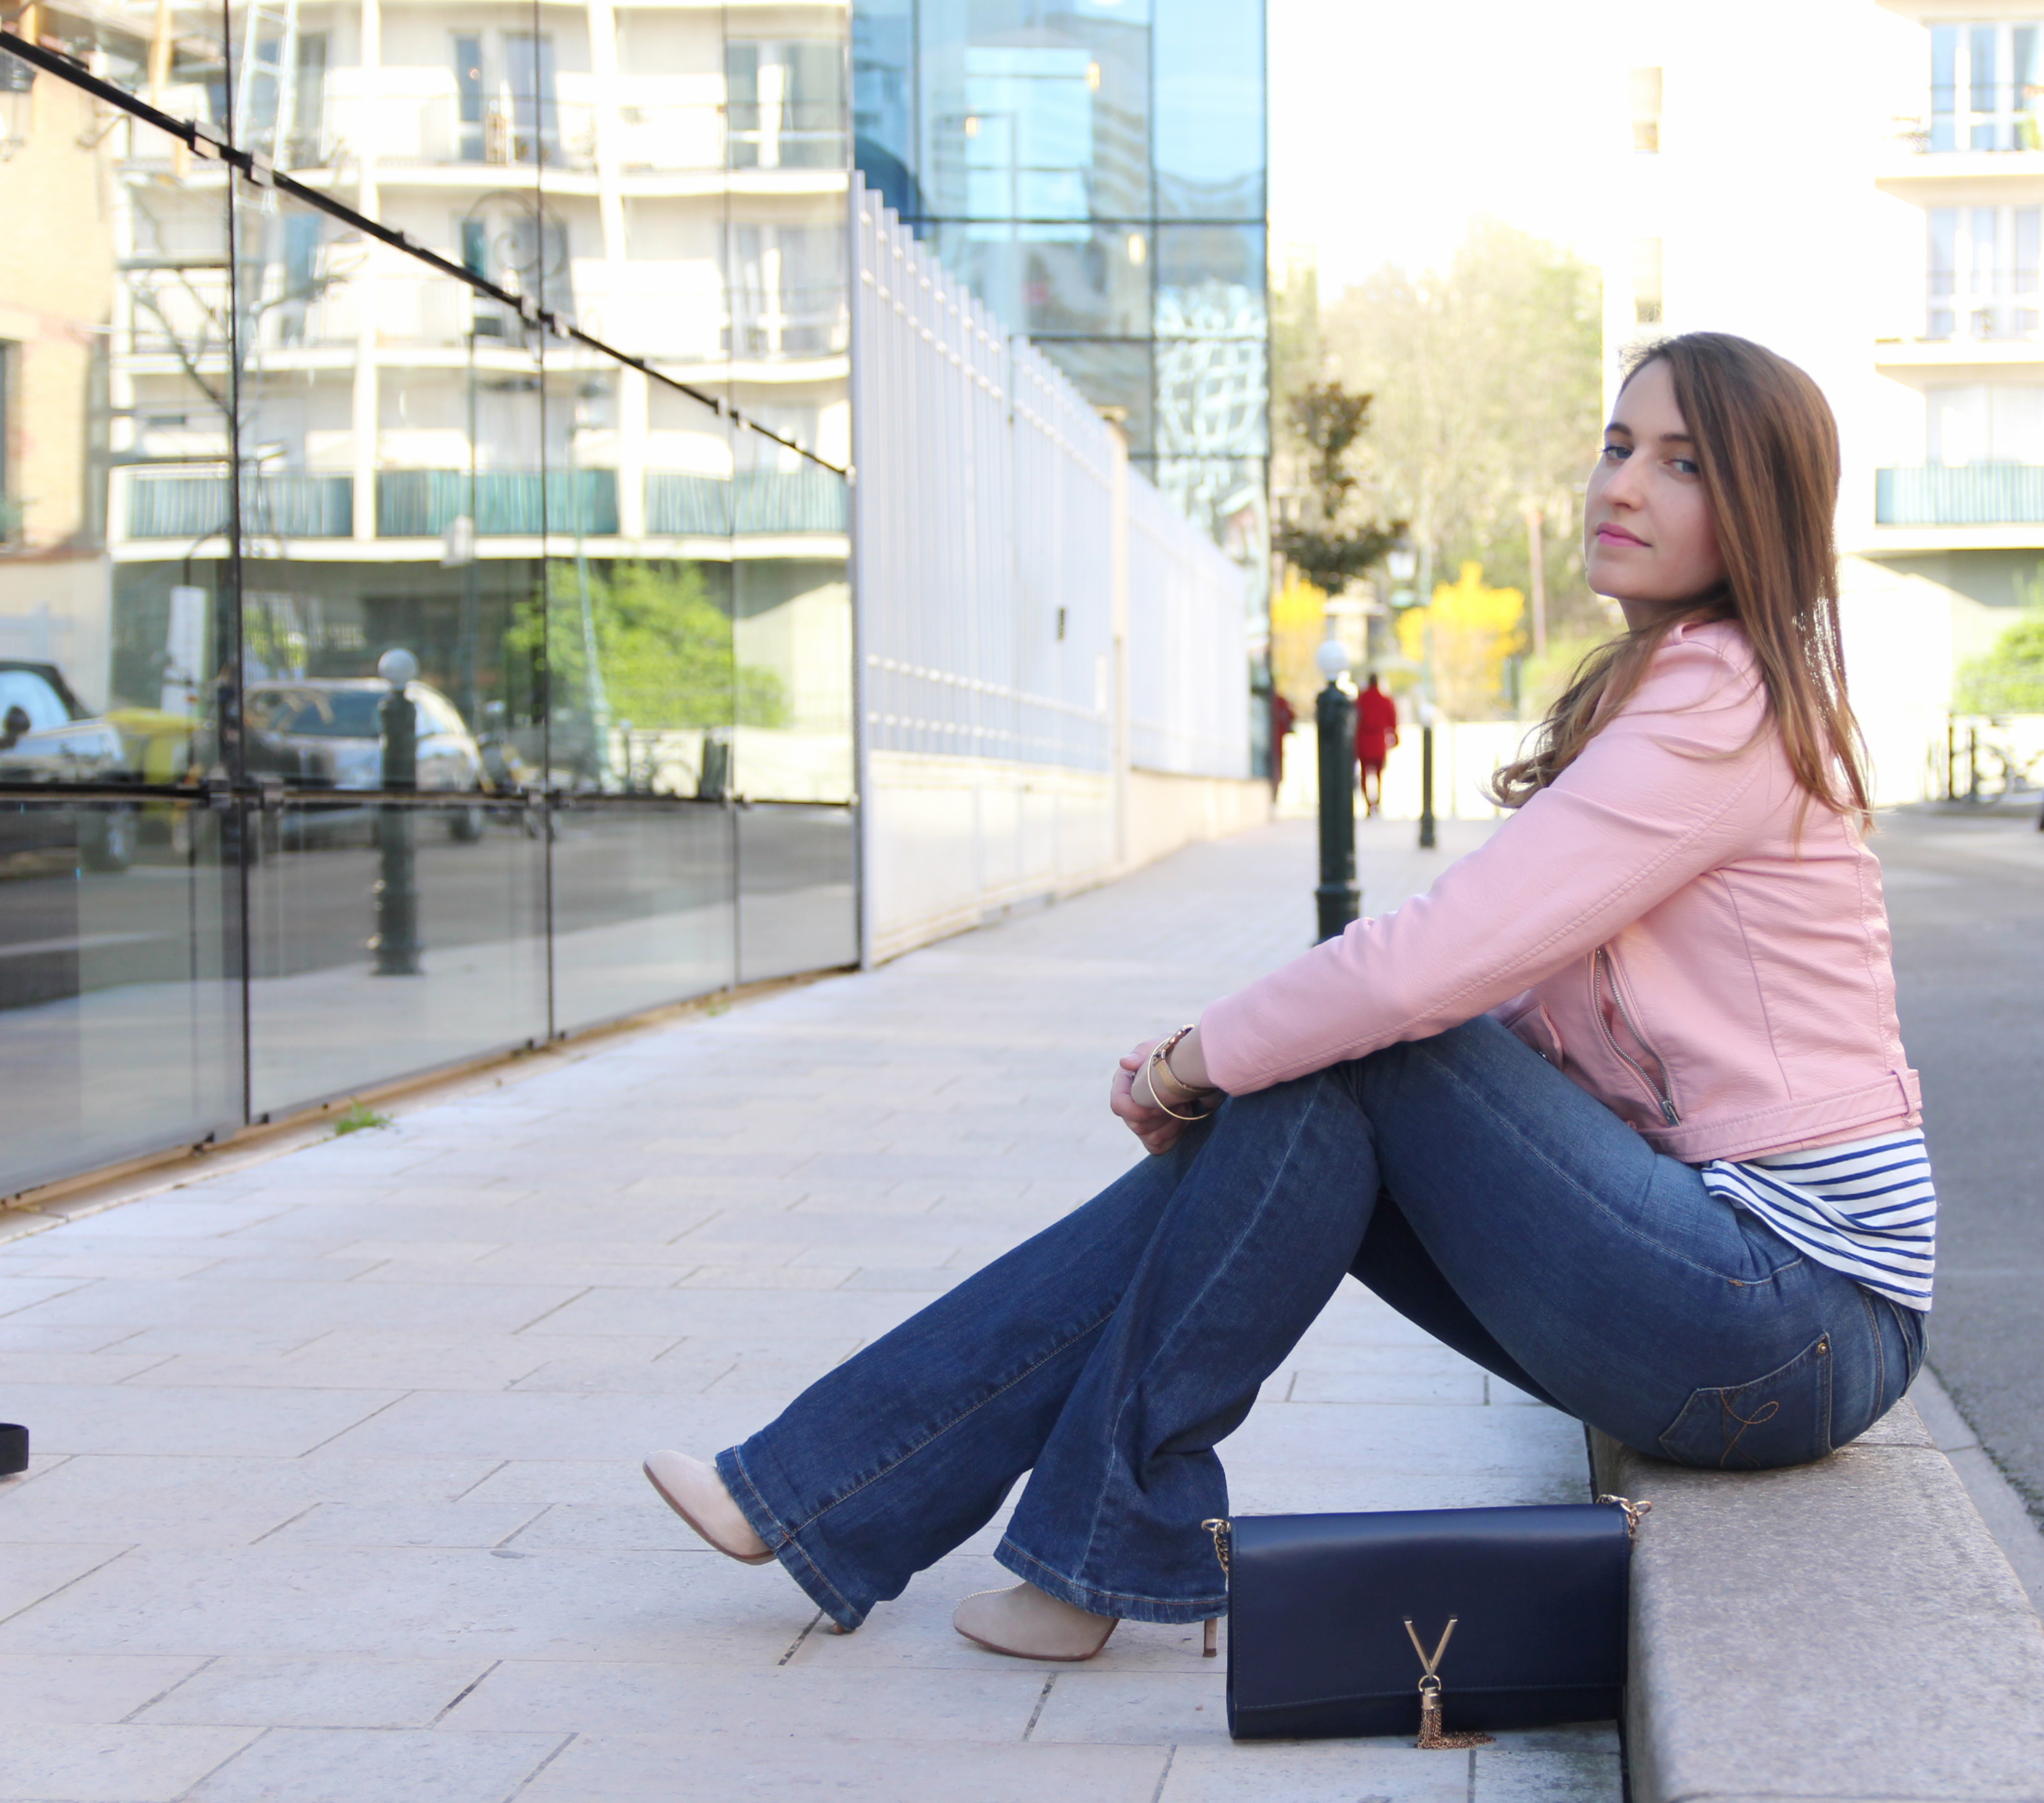 perfecto-rose-zara-marinniere-denim-influencer-fashion-ottd-look-seralynepointcom-paris-IMG_6965